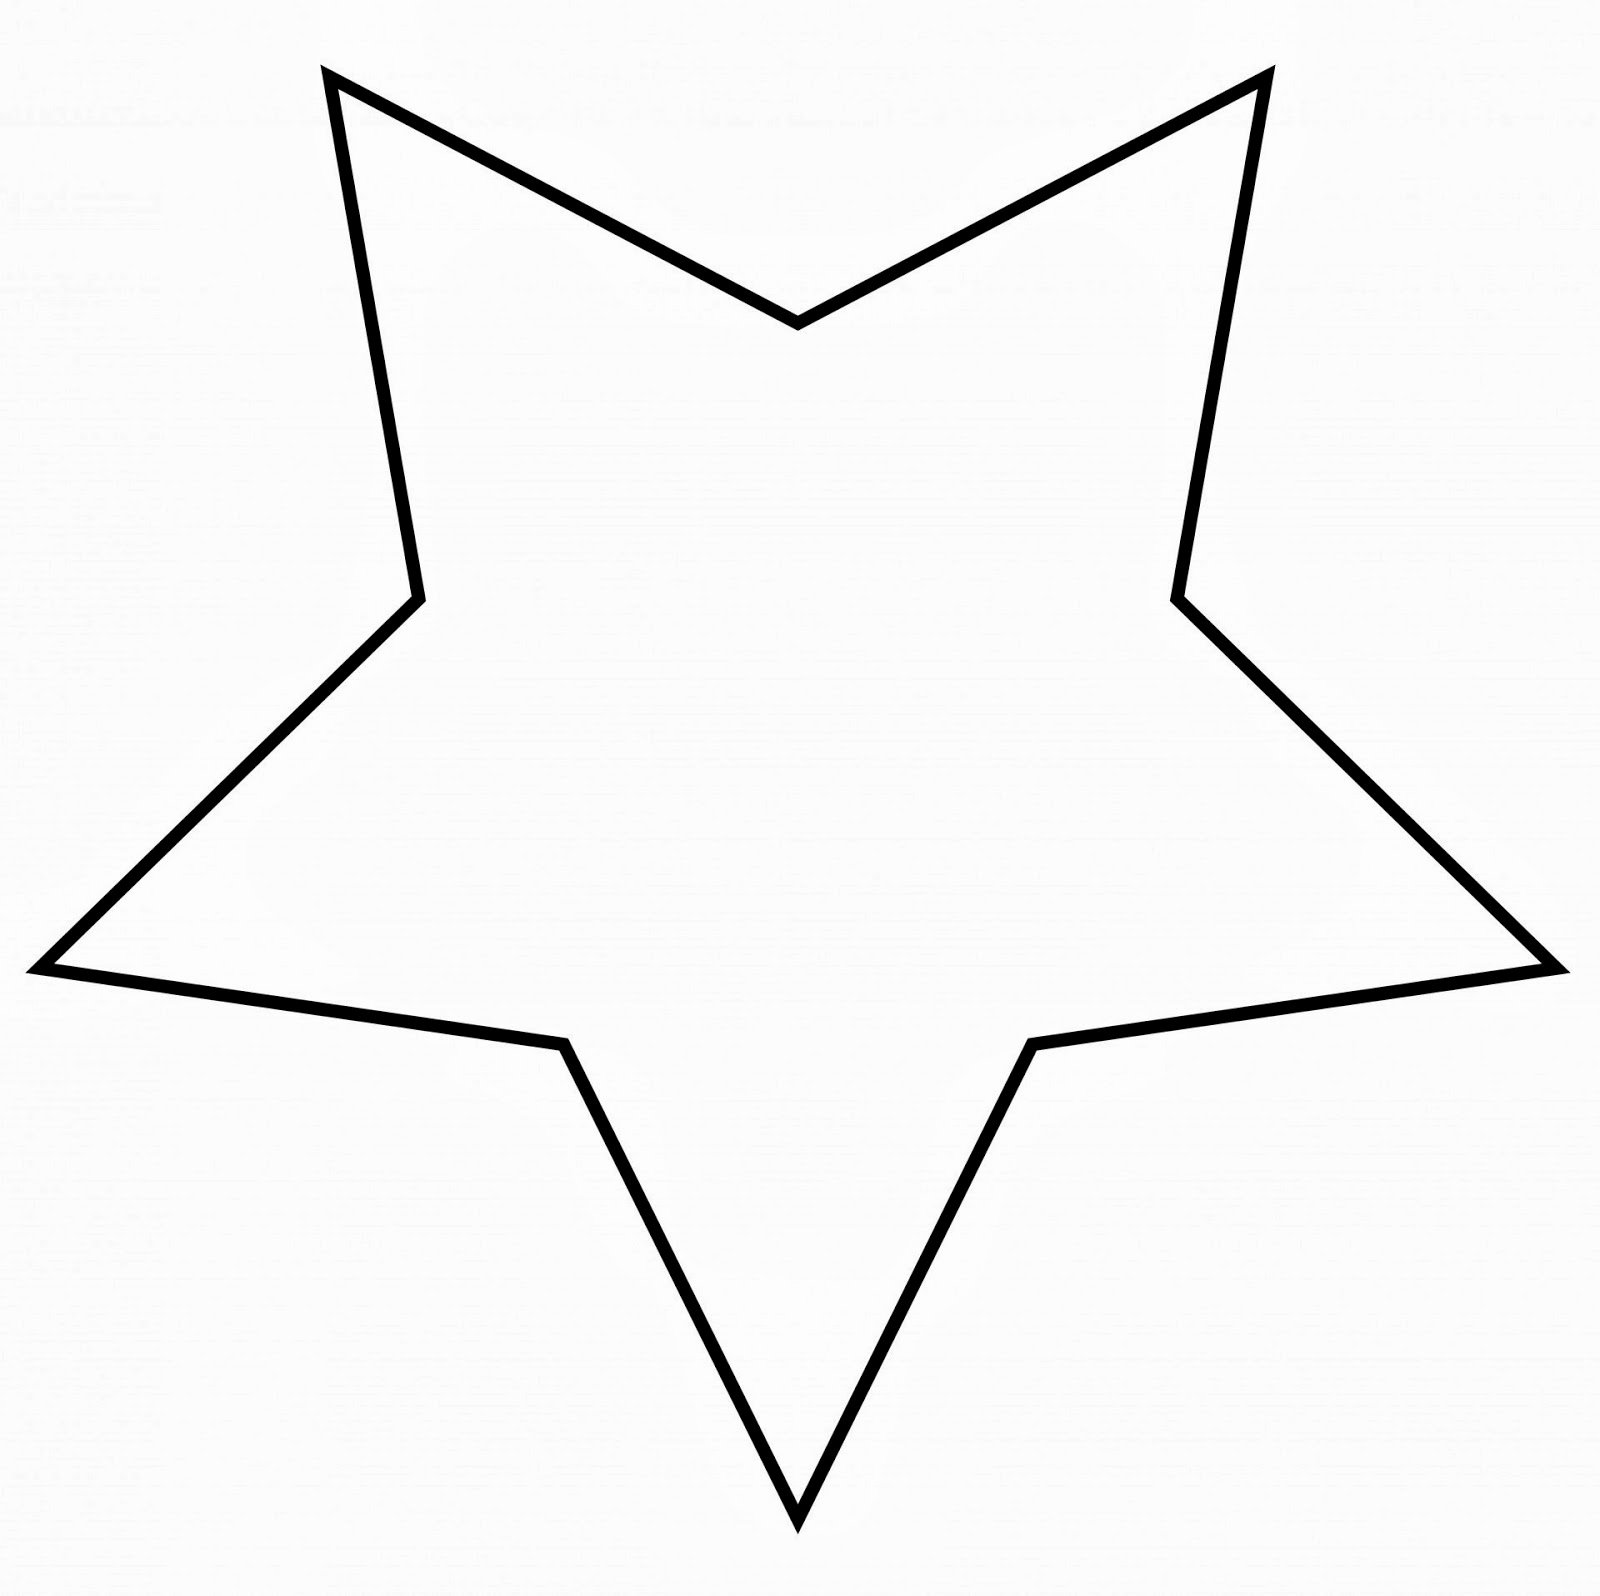 8 Point Star Template Printable Unique Star Template to Print Cliparts